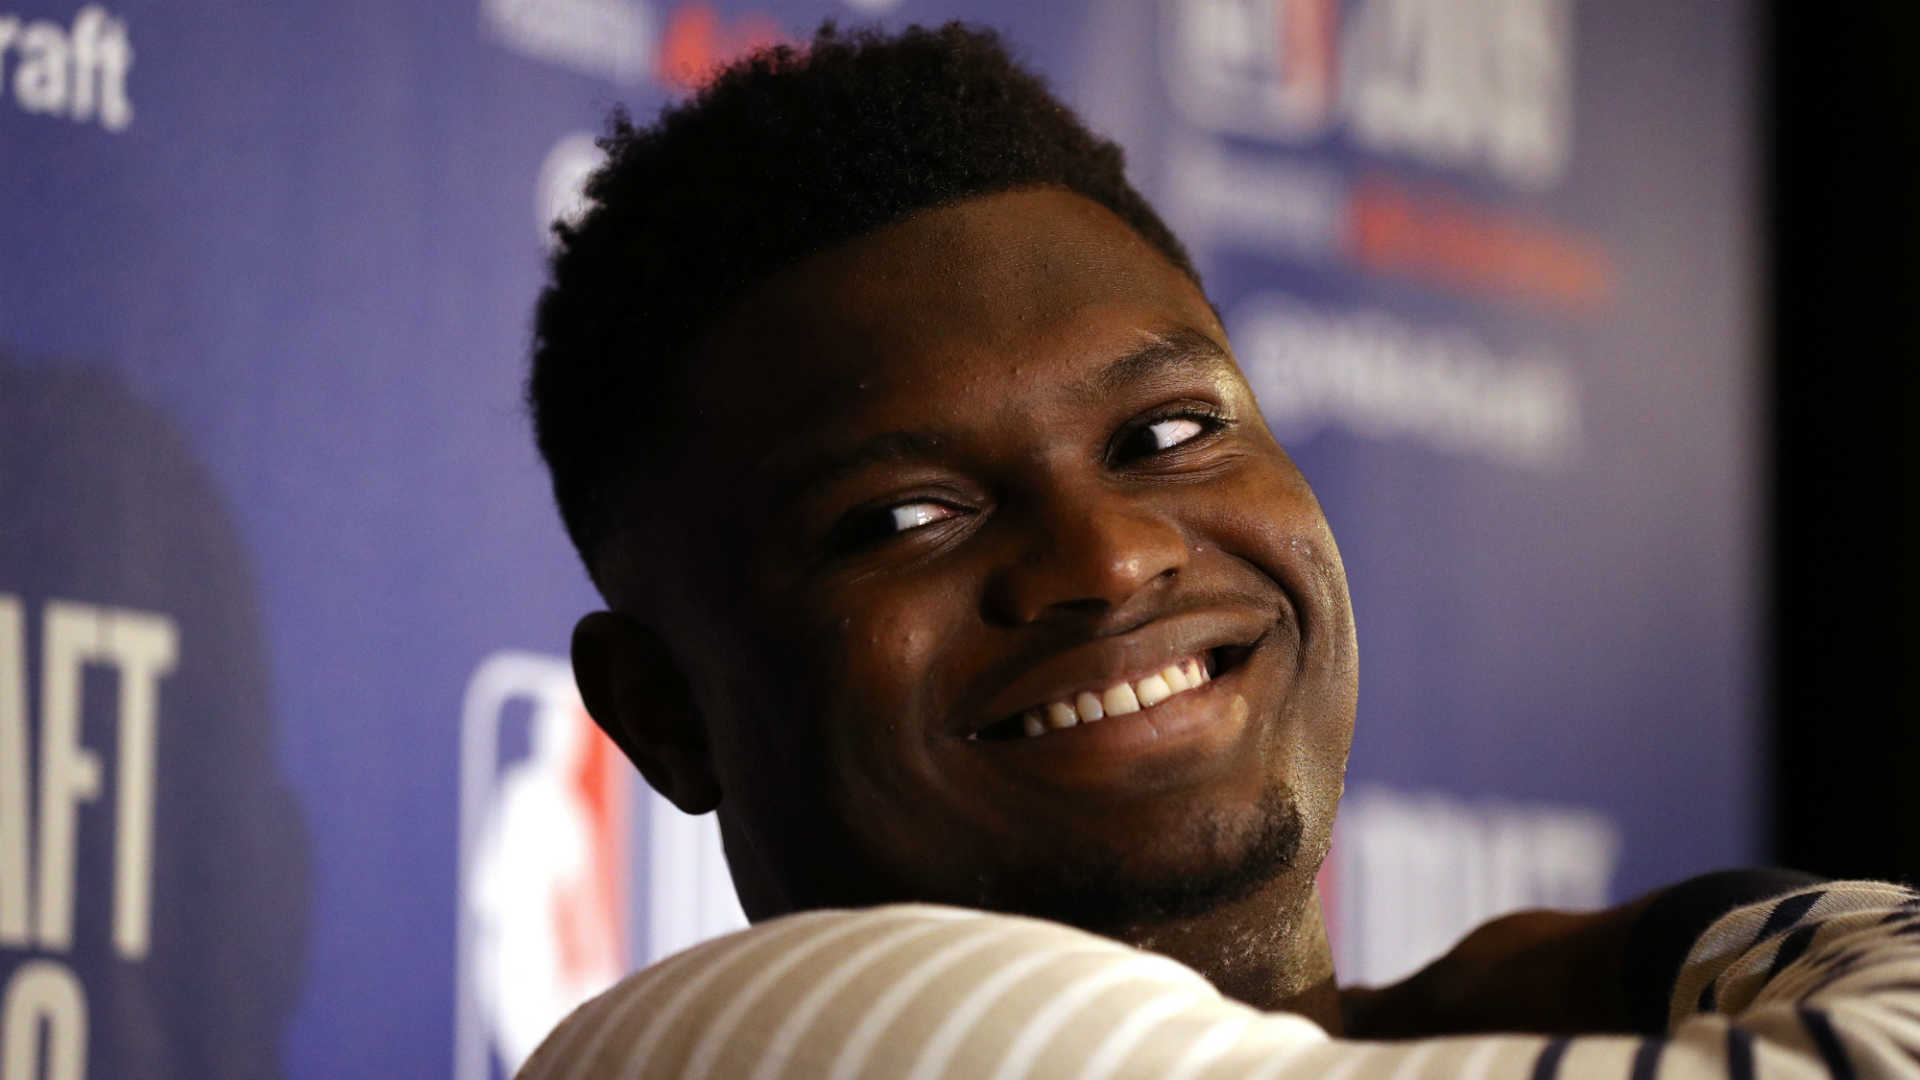 NBA Draft 2019: 'We haven't seen the best' of Zion Williamson, his HS coach says